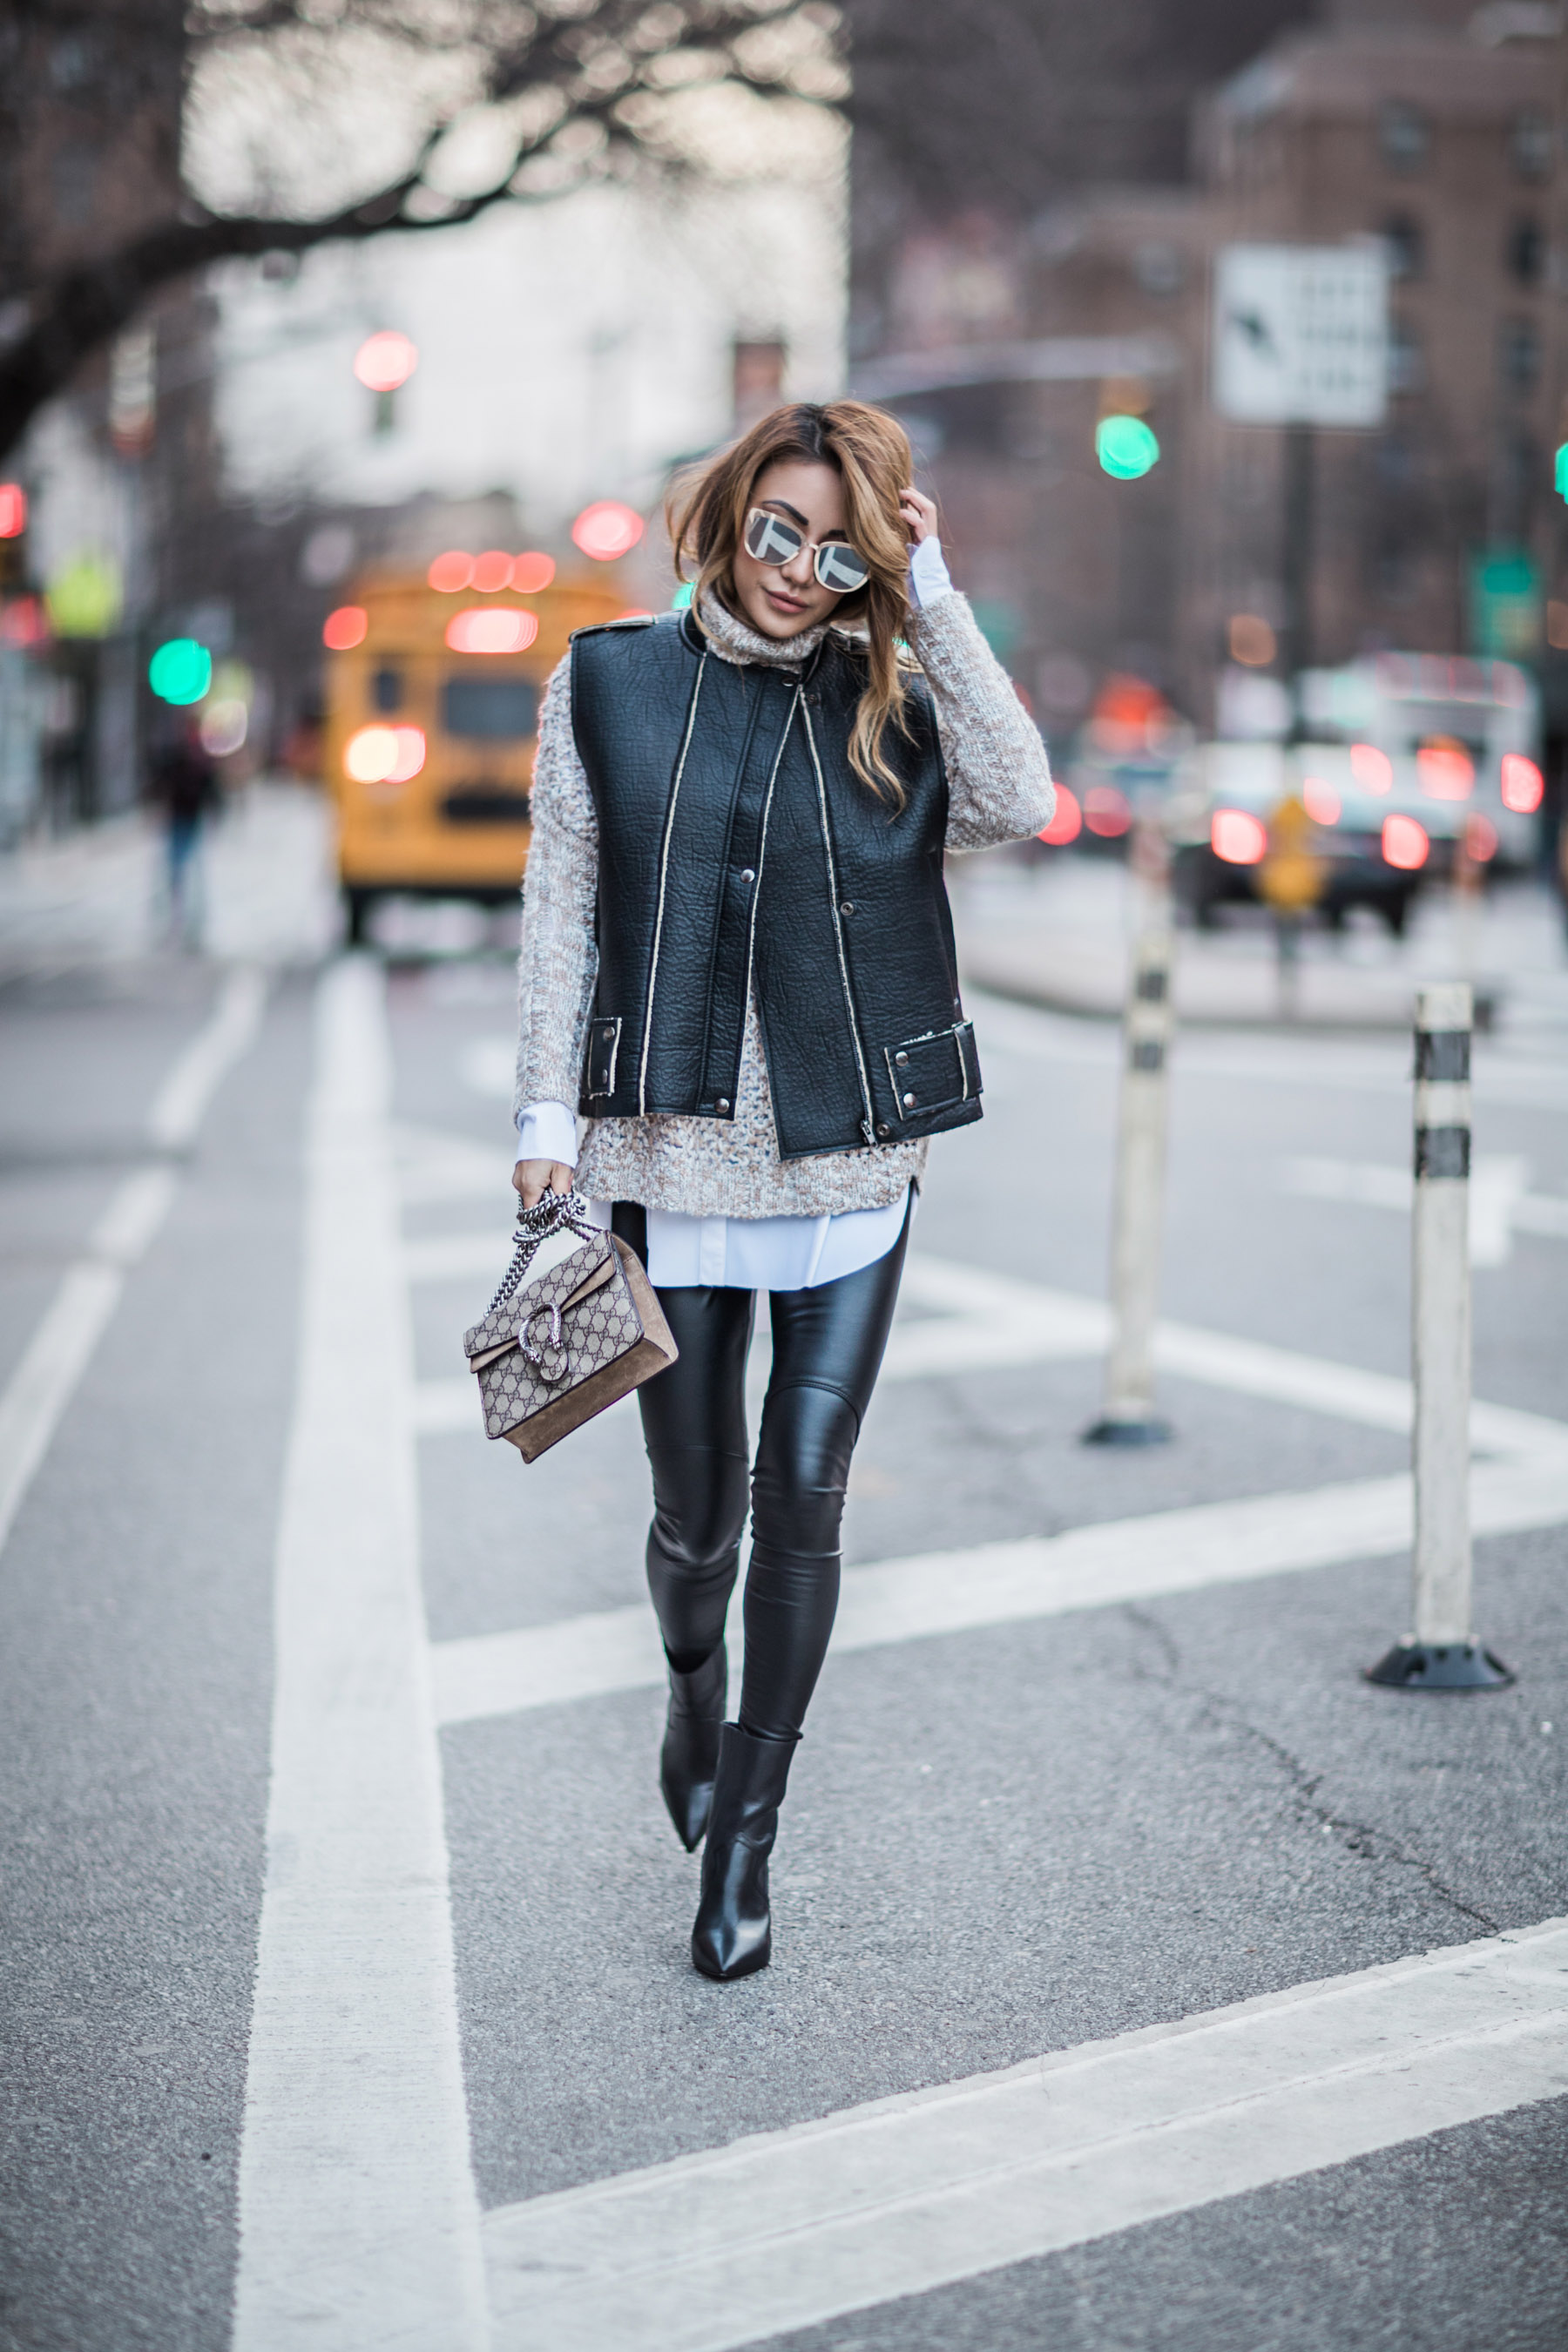 Leather Jackets  For Fall Fashion // NotJessFashion.com